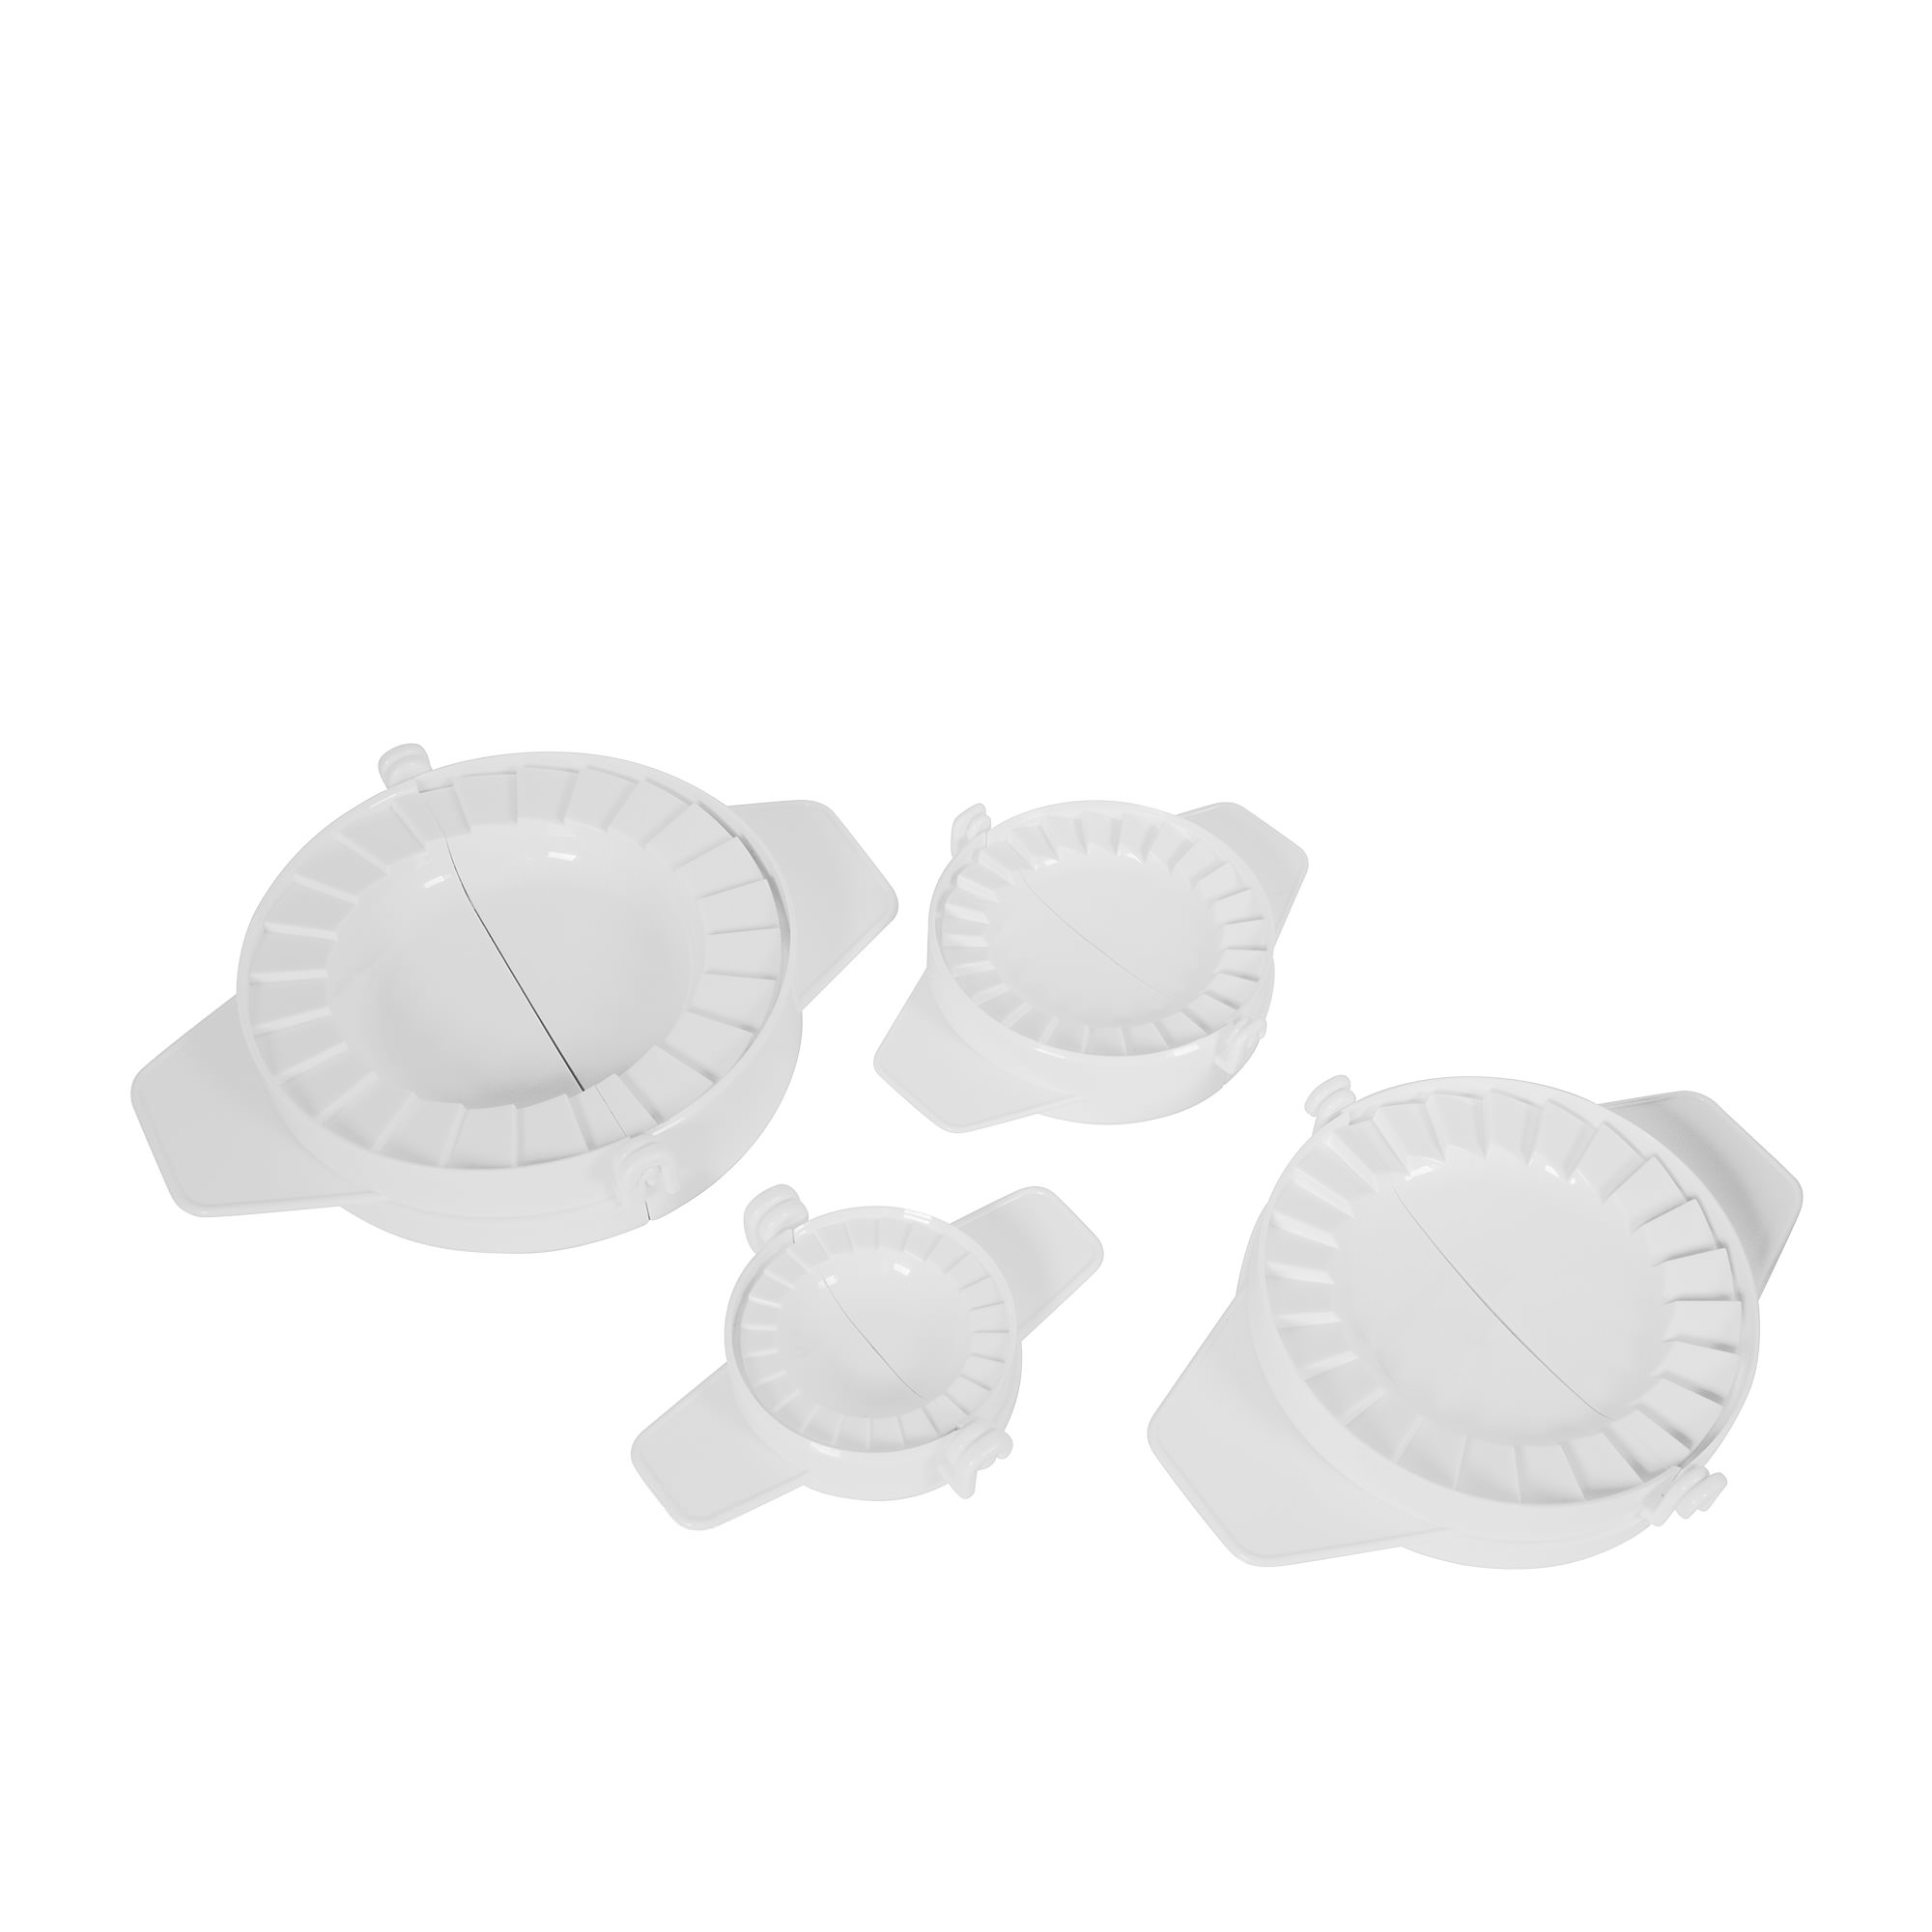 Avanti 4pc Dumpling Maker Set